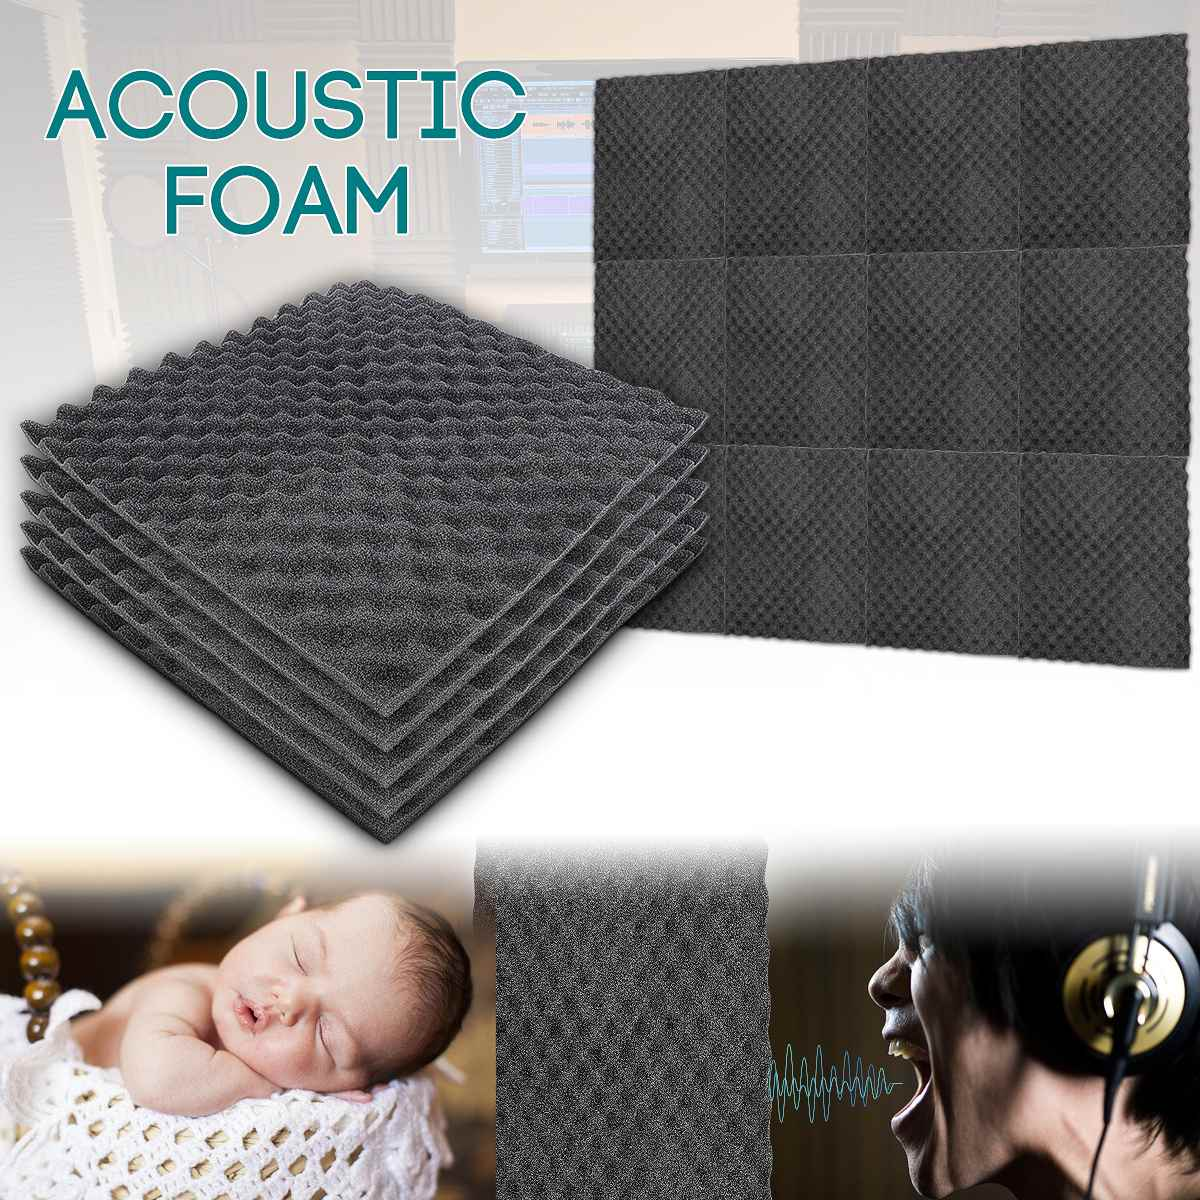 50x50cm 1.5cm Black Soundproofing Foam Acoustic Foam Sound Absorbing Wedge Noise Sponge Tiles Wall Panel Suitable For Sound Stud